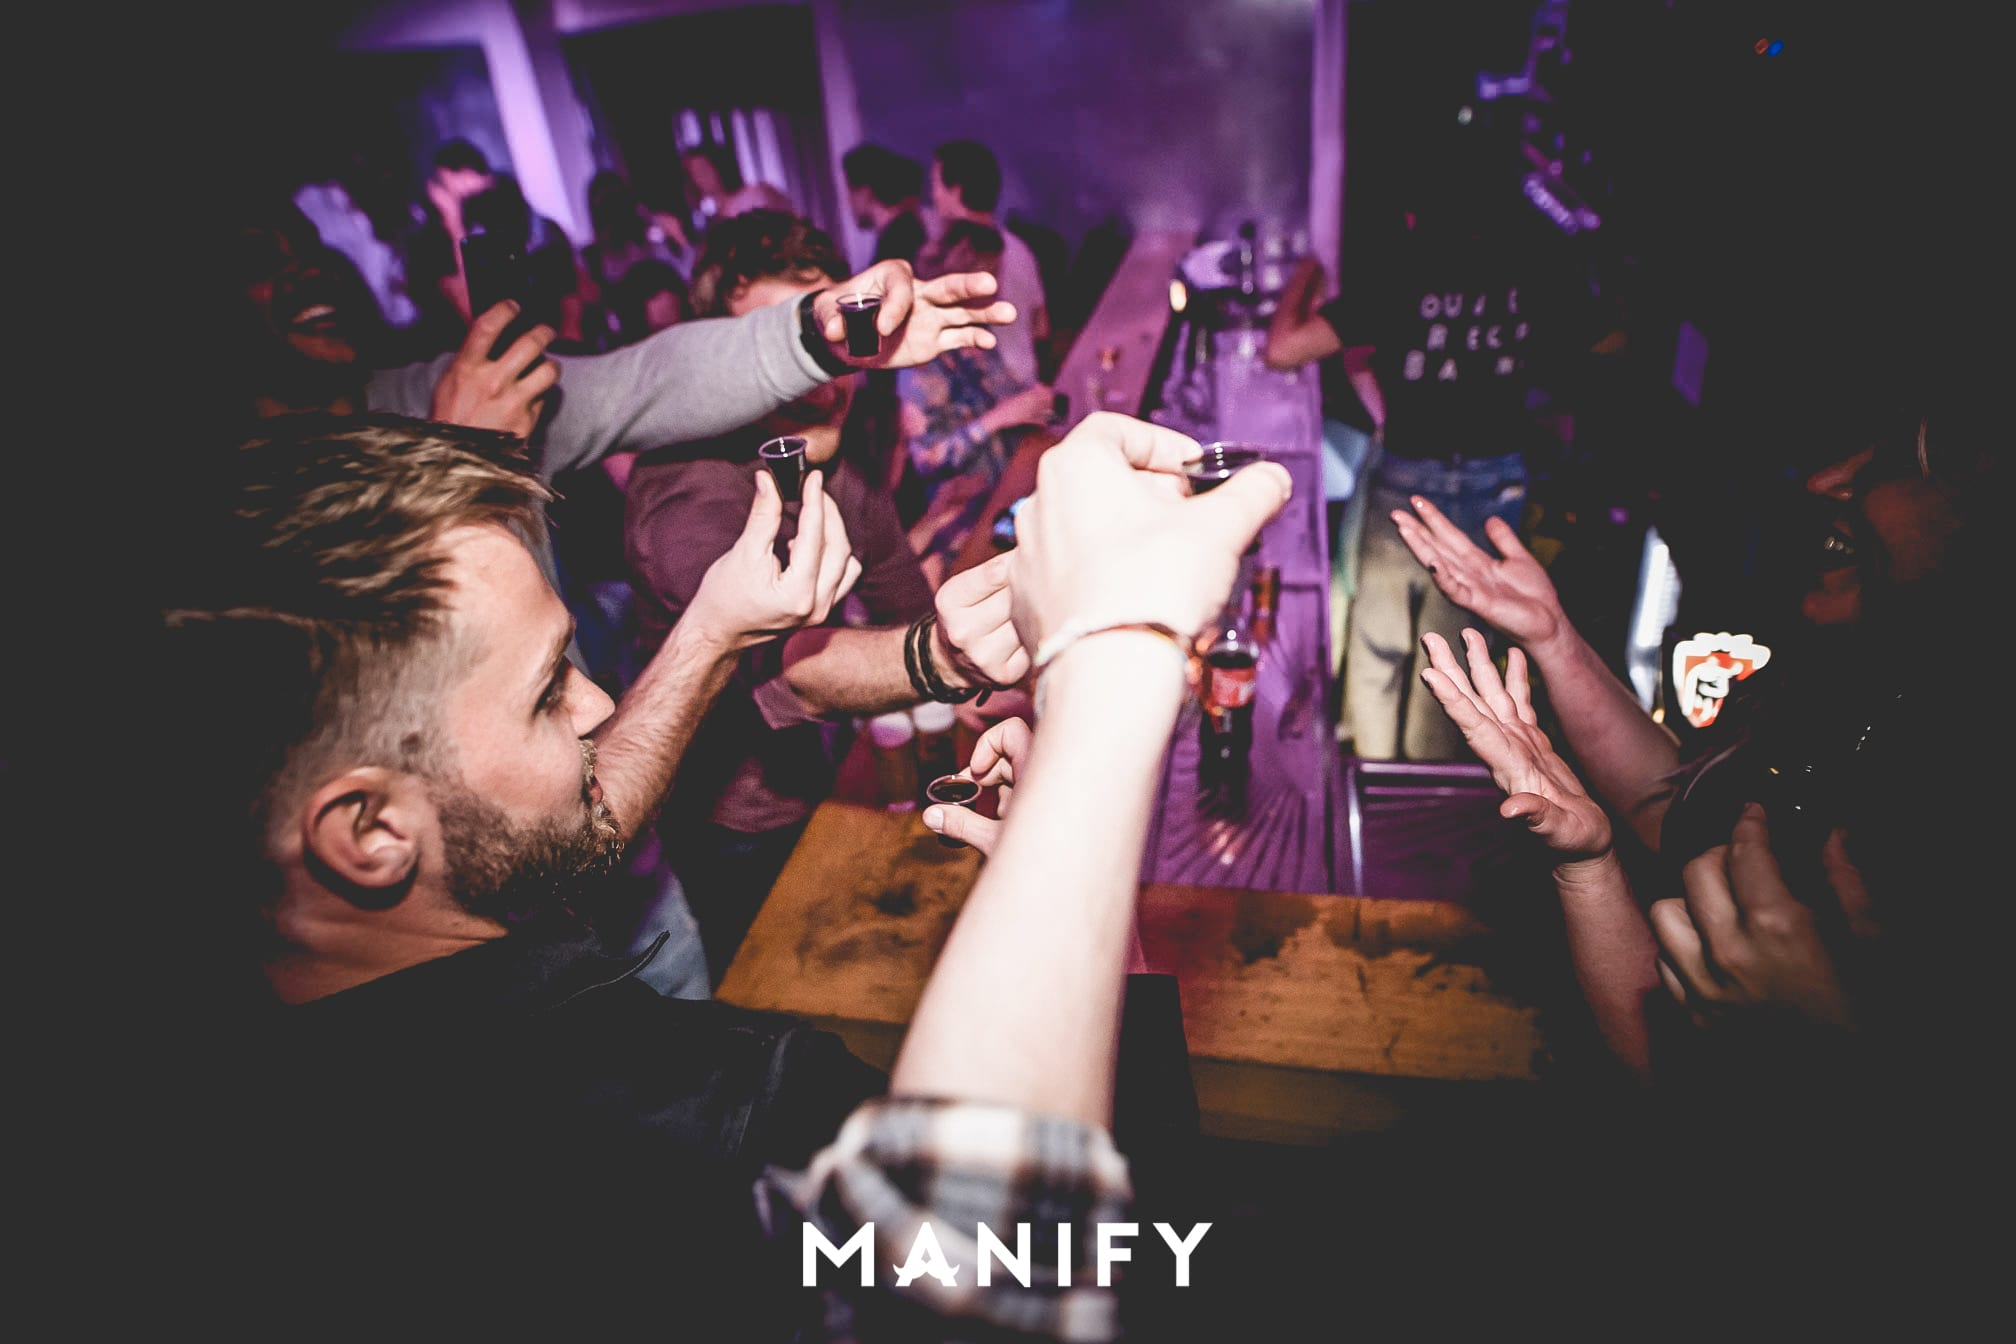 Manify_Out_of_office_EHV-WM-101-manify